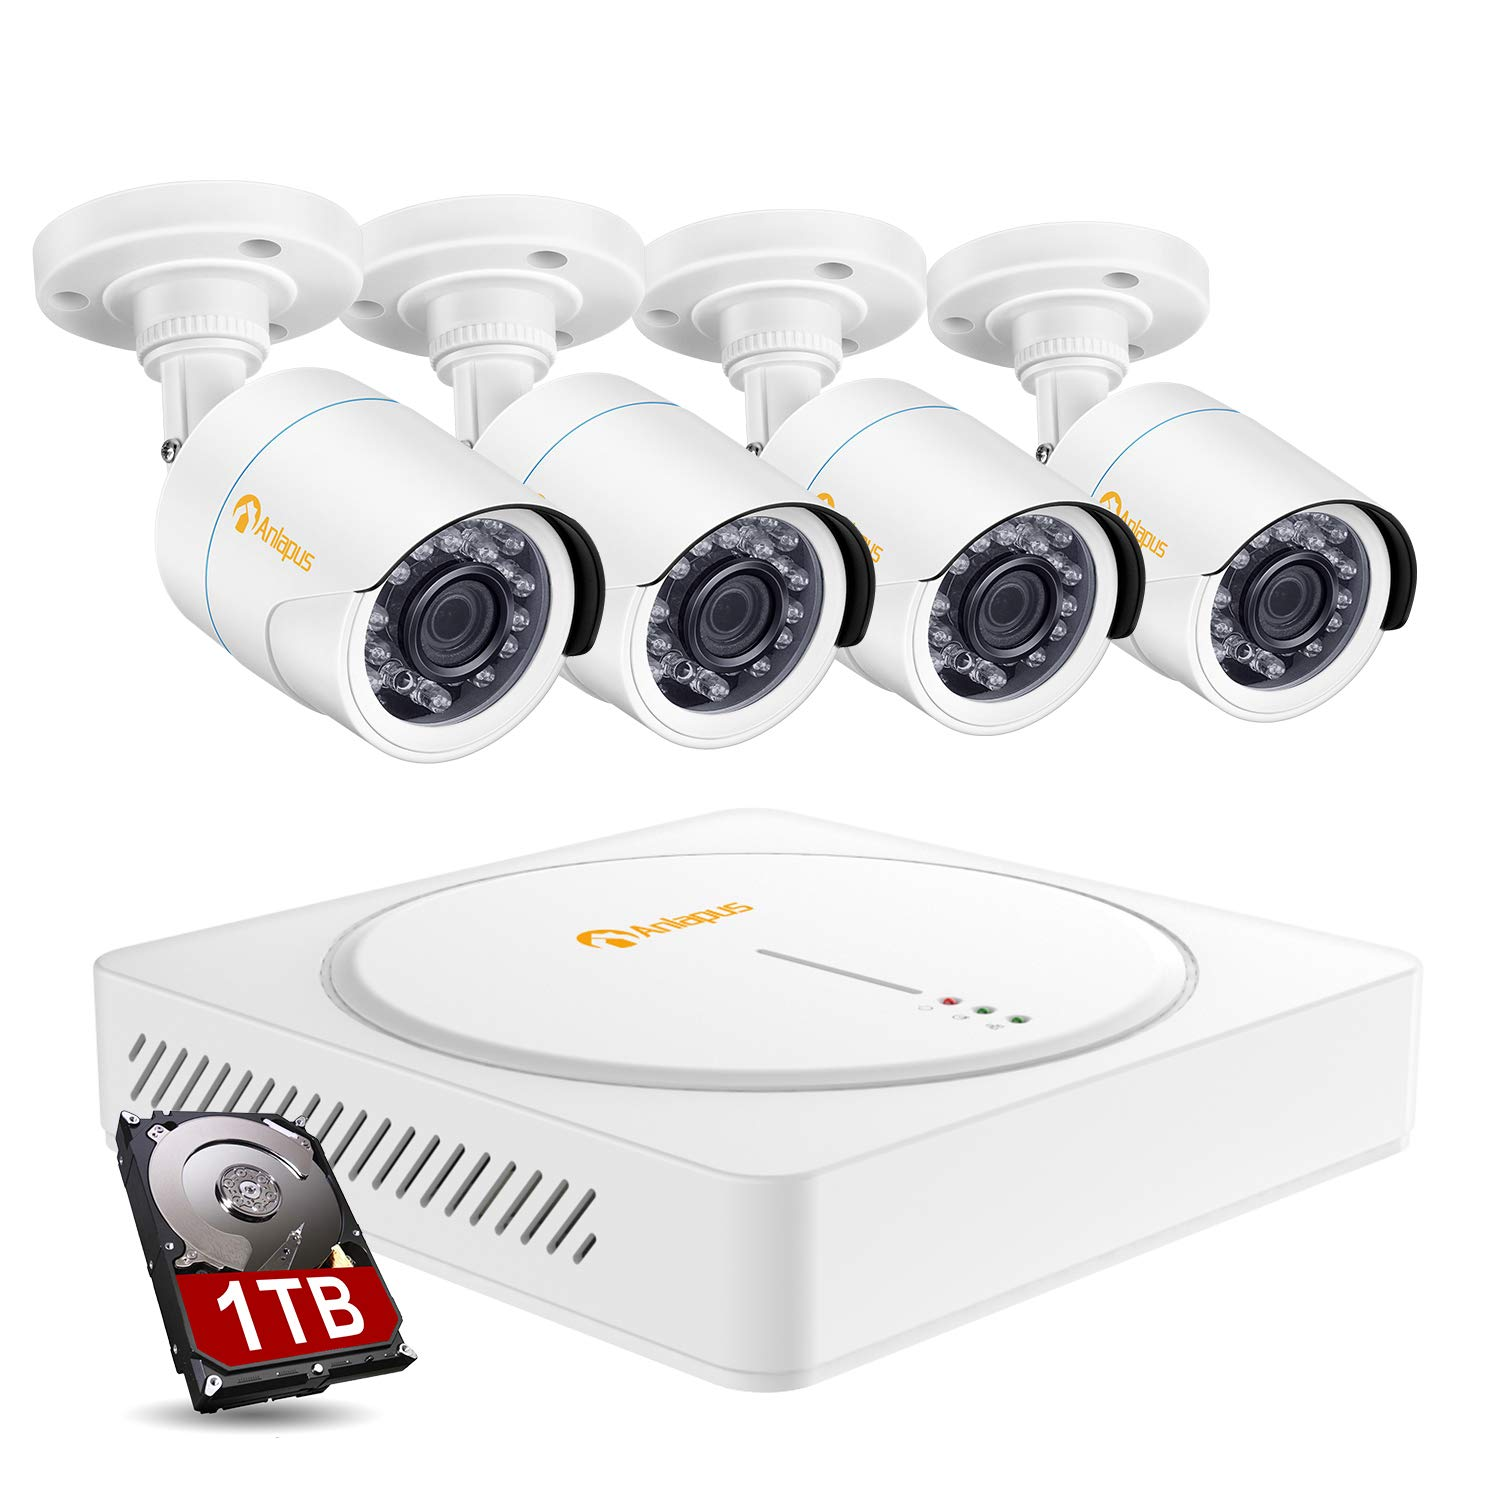 Anlapus 8IS-124W4-10-FBA 8CH CCTV Camera System 8 Channel 1080p CCTV DVR Recorder with 1TB Hard Drive and 4pcs 2.0MP HD Outdoor Indoor Waterproof Security Cameras for Homes Customize Motion Zone by Anlapus